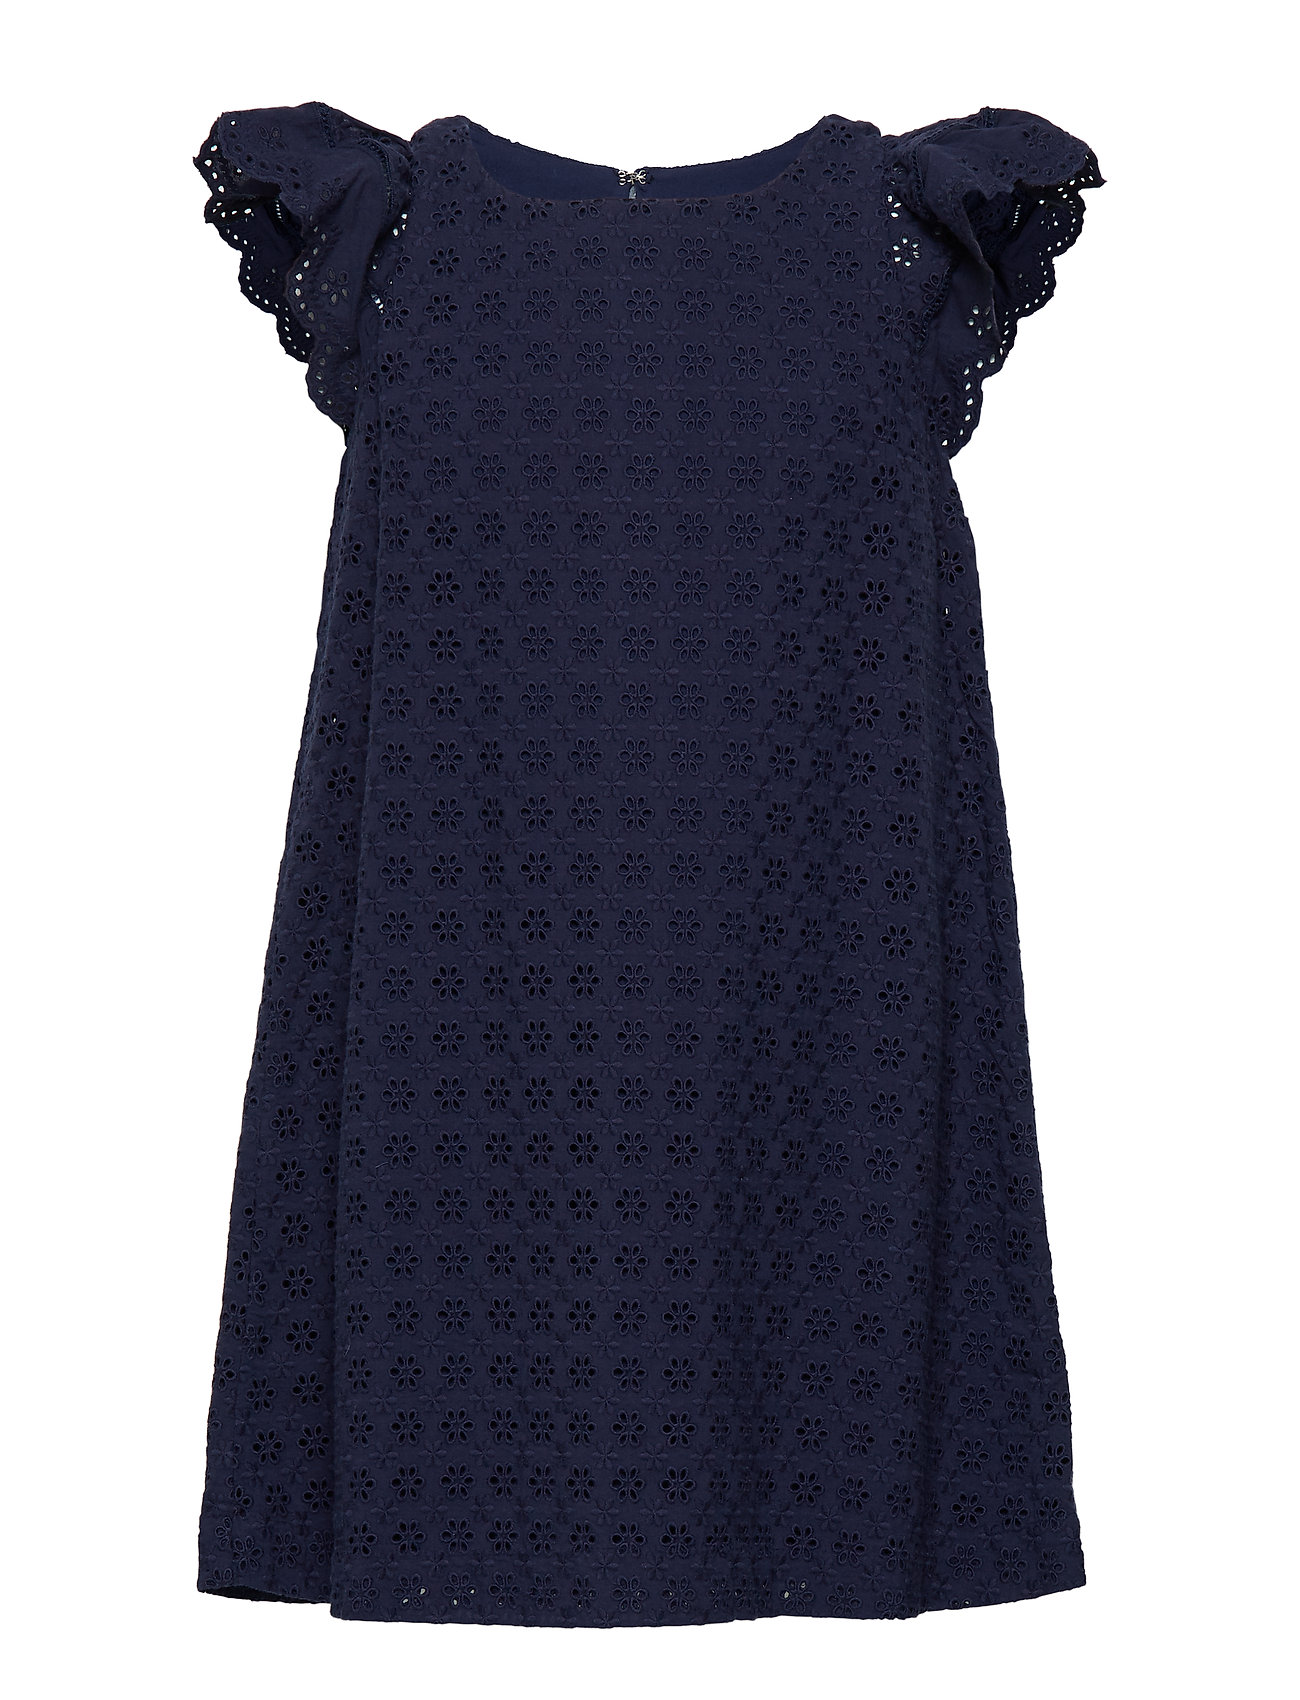 Ralph Lauren Kids COTTON EYELET-EYELET DRESS-DR-WVN - FRENCH NAVY